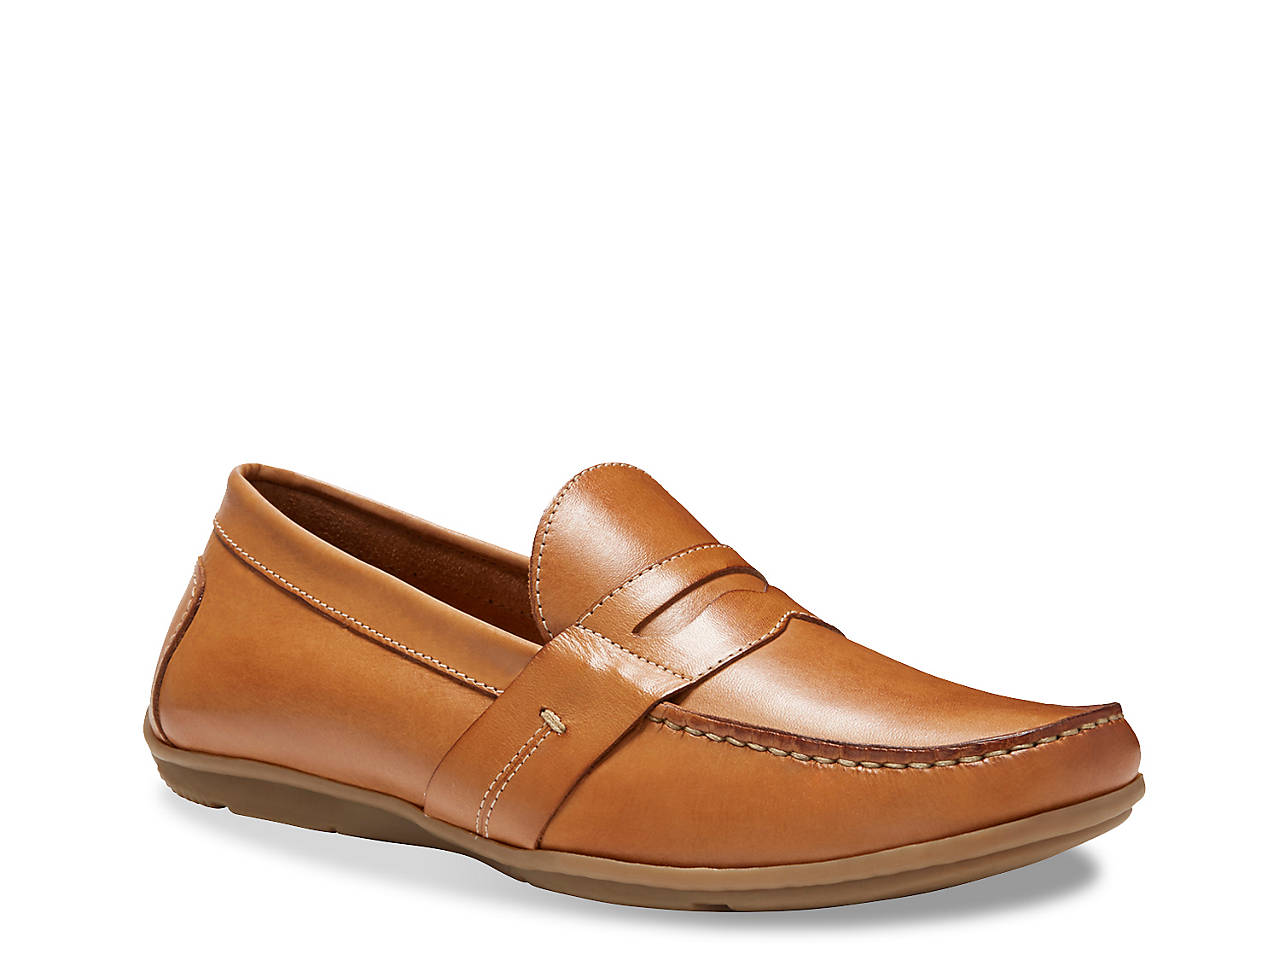 buy cheap largest supplier Eastland Pensacola Men's Penny ... Loafers largest supplier online outlet sast B0X8mE